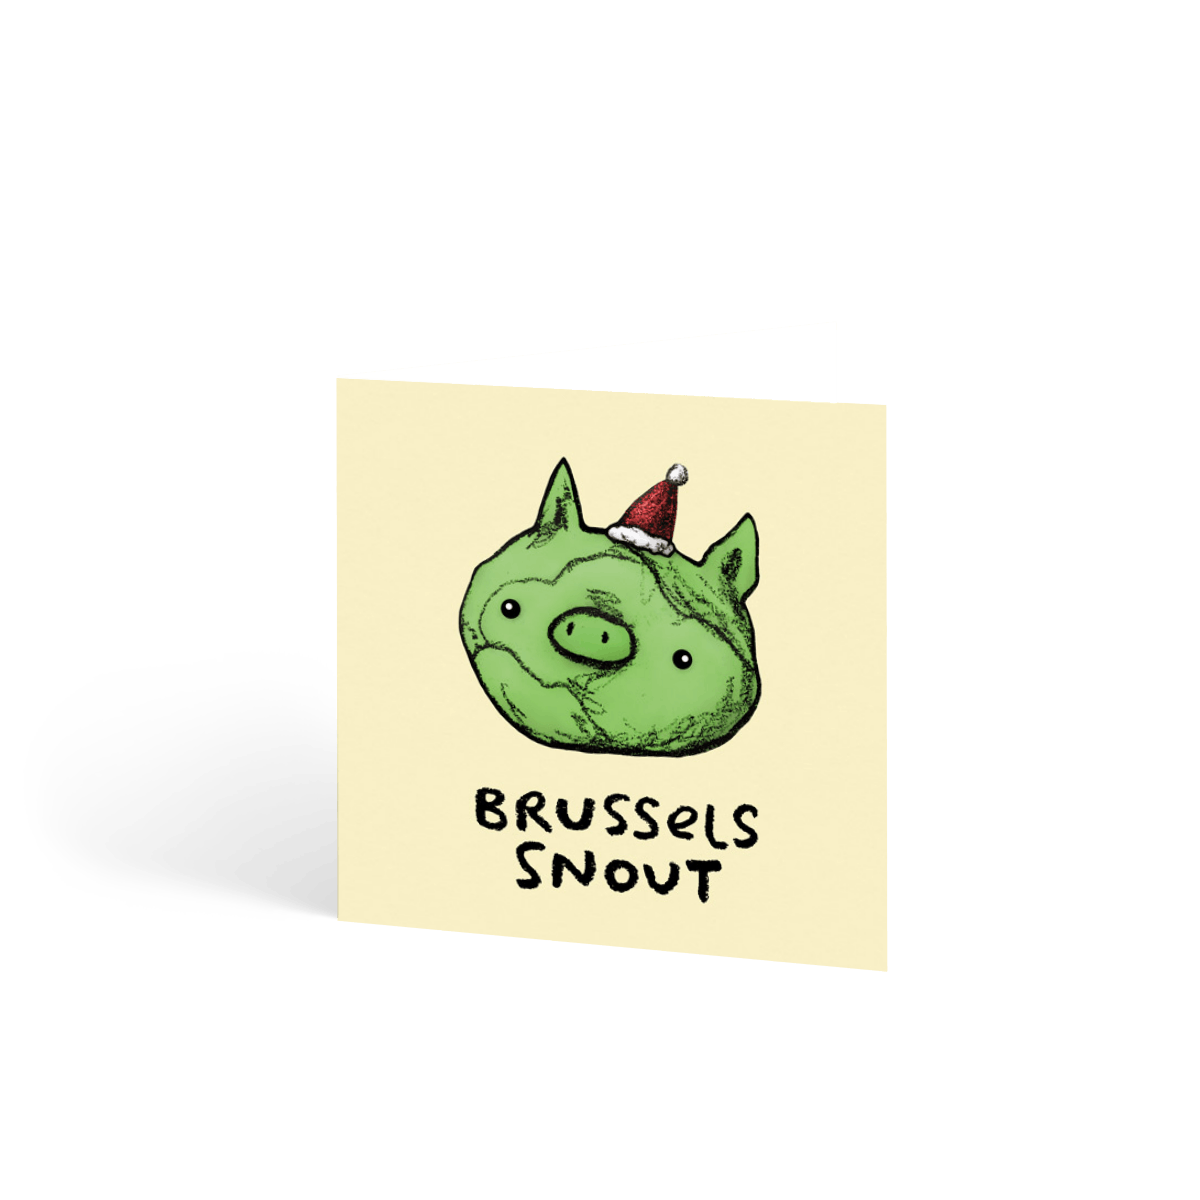 Https%3a%2f%2fwww.papier.com%2fproduct image%2f14524%2f16%2fbrussels snout 3874 front 1541175427.png?ixlib=rb 1.1